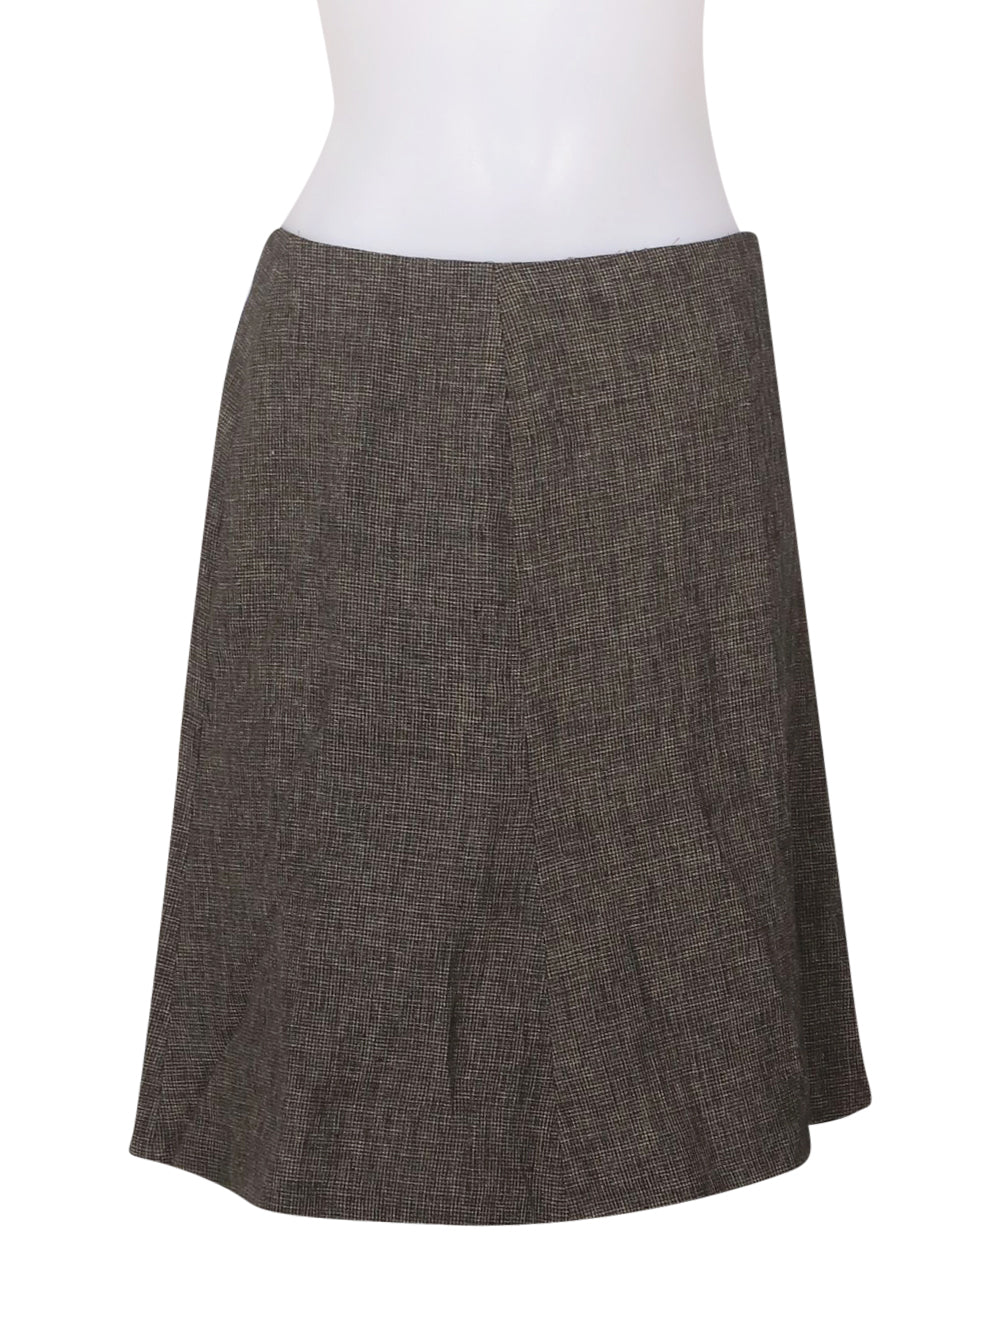 Front photo of Preloved Laltramoda Black Woman's skirt - size 10/M